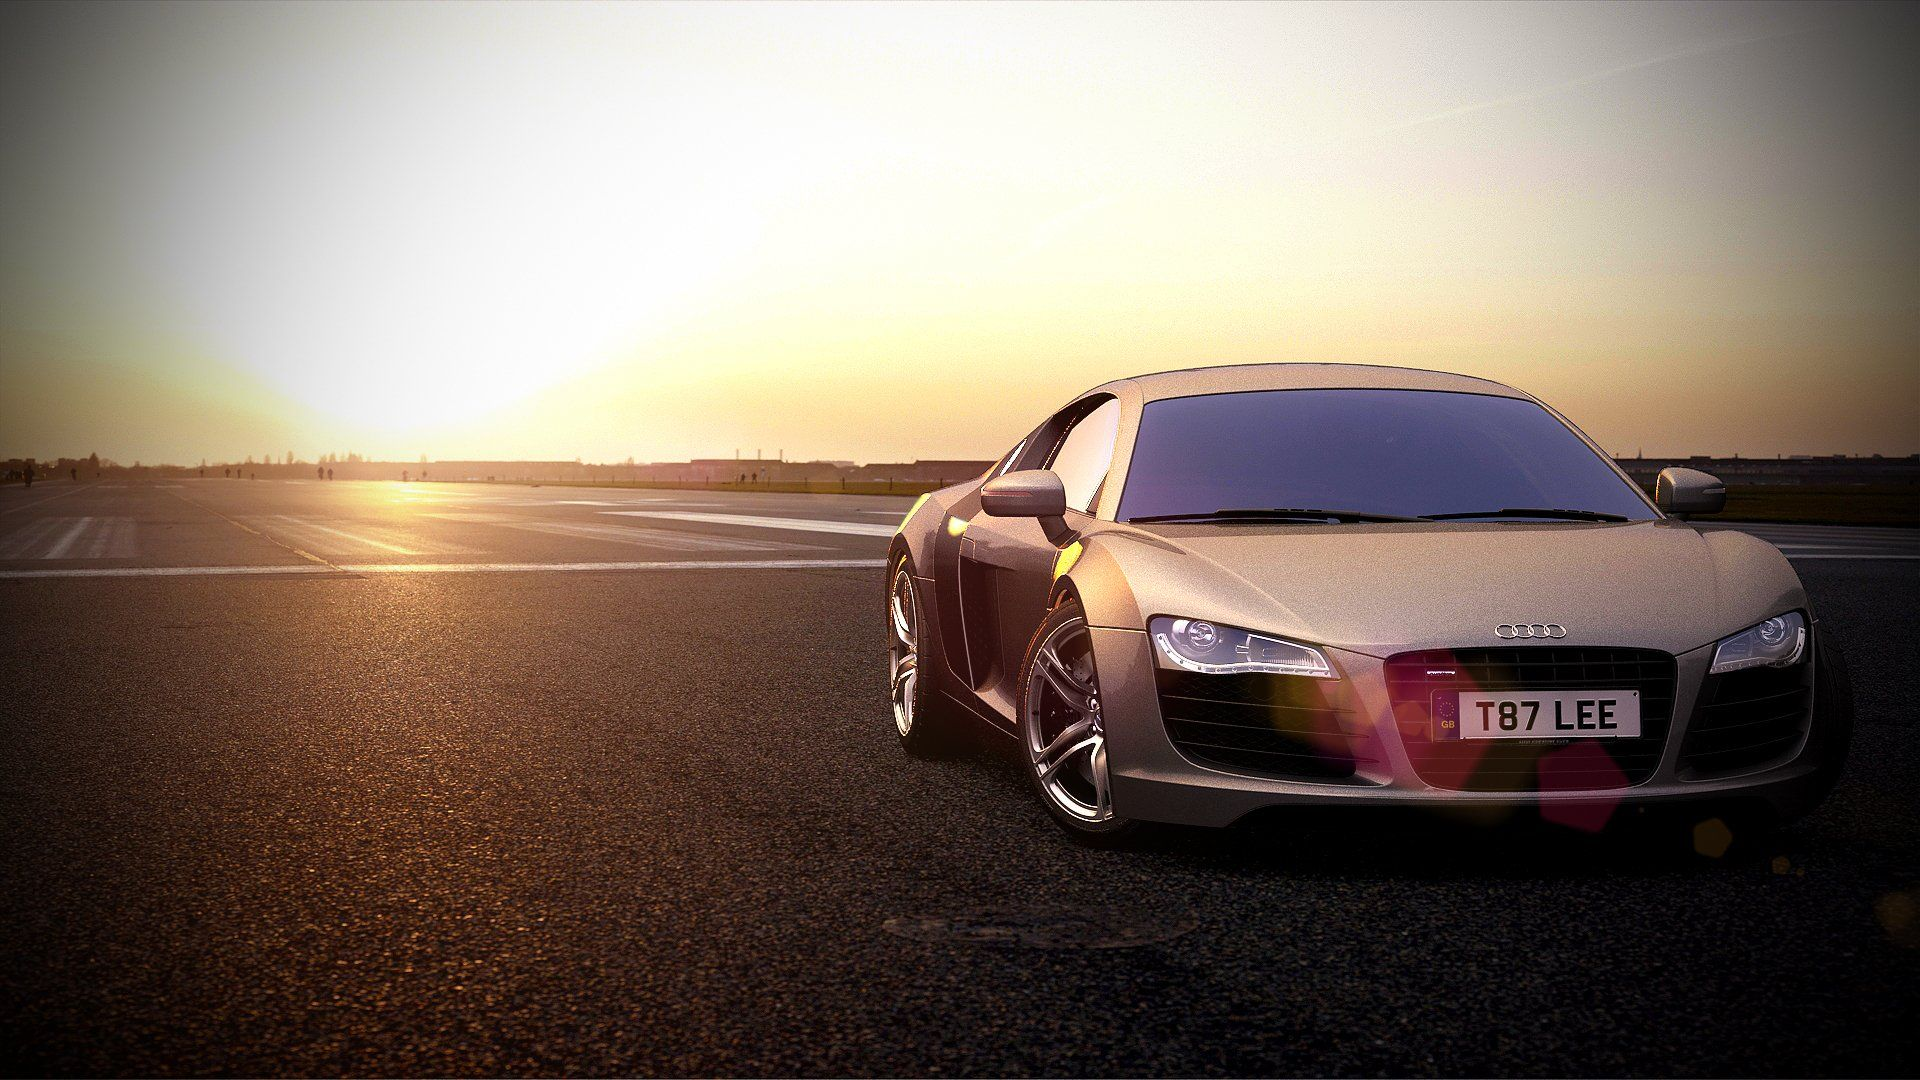 Audi R8 Wallpapers Top Free Audi R8 Backgrounds Wallpaperaccess